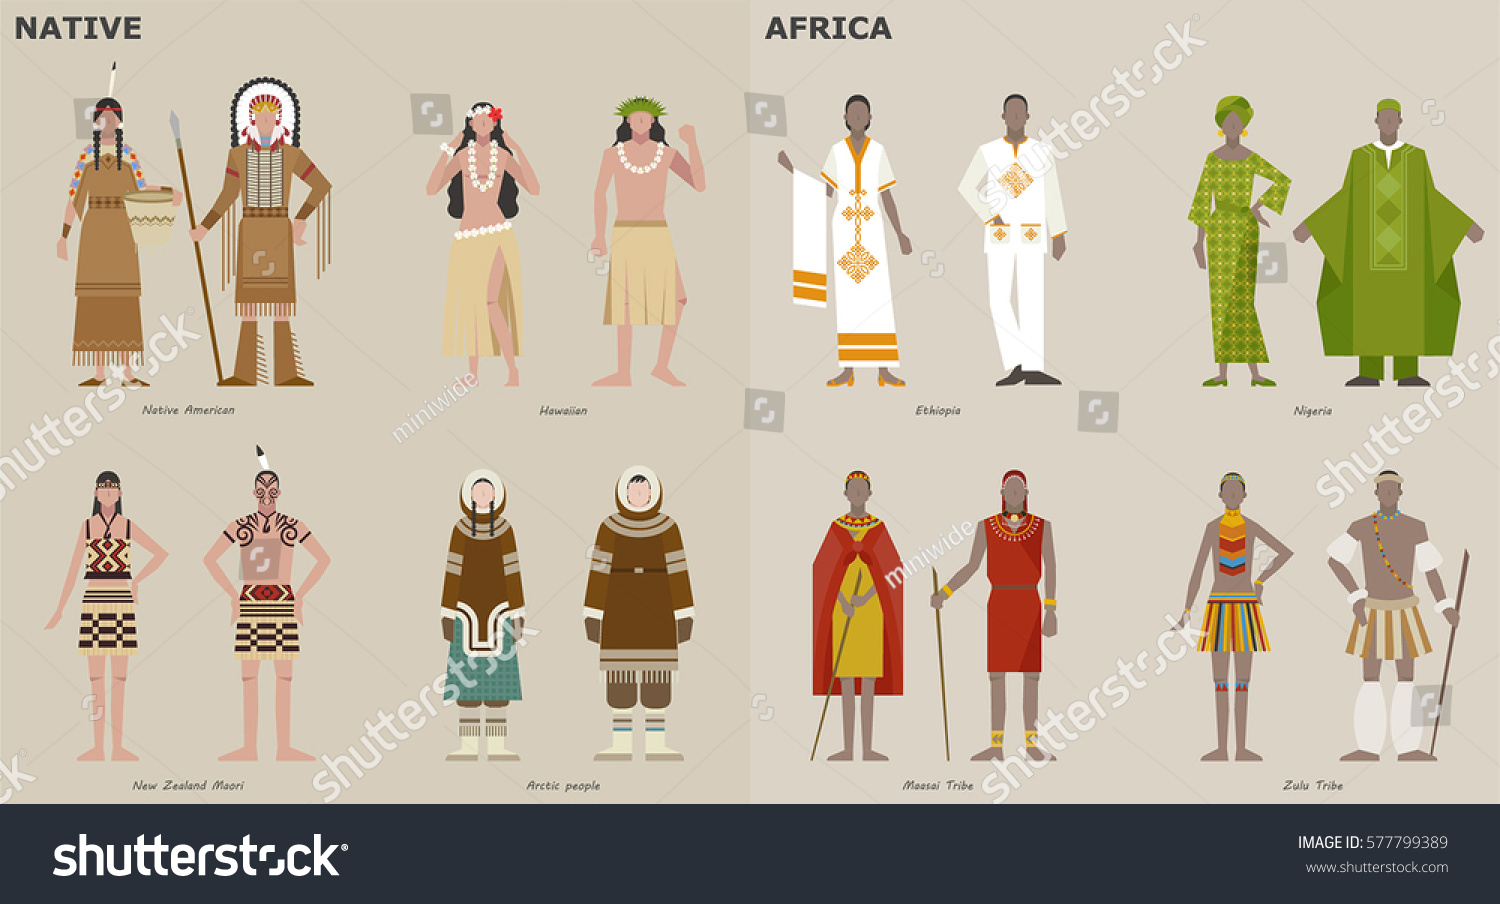 Character Costume Design Tutorial : Traditional costumes by country people character stock